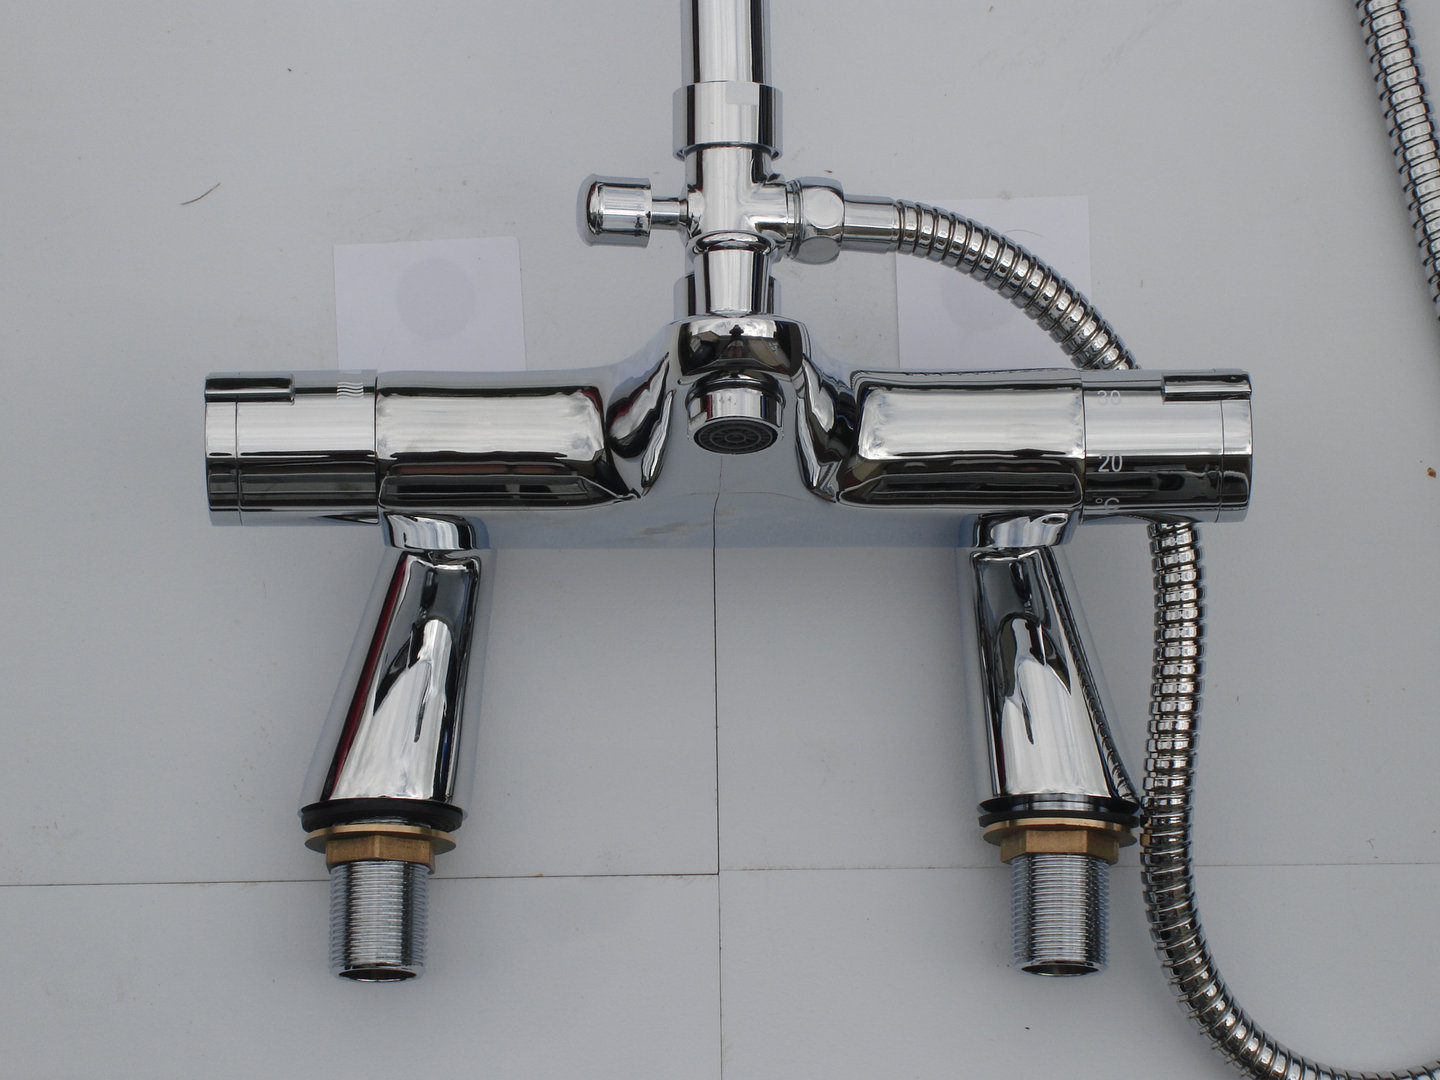 DECK THERMOSTATIC BATH SHOWER MIXER TAPS RIGID RISER RAIN HEAD MULTI